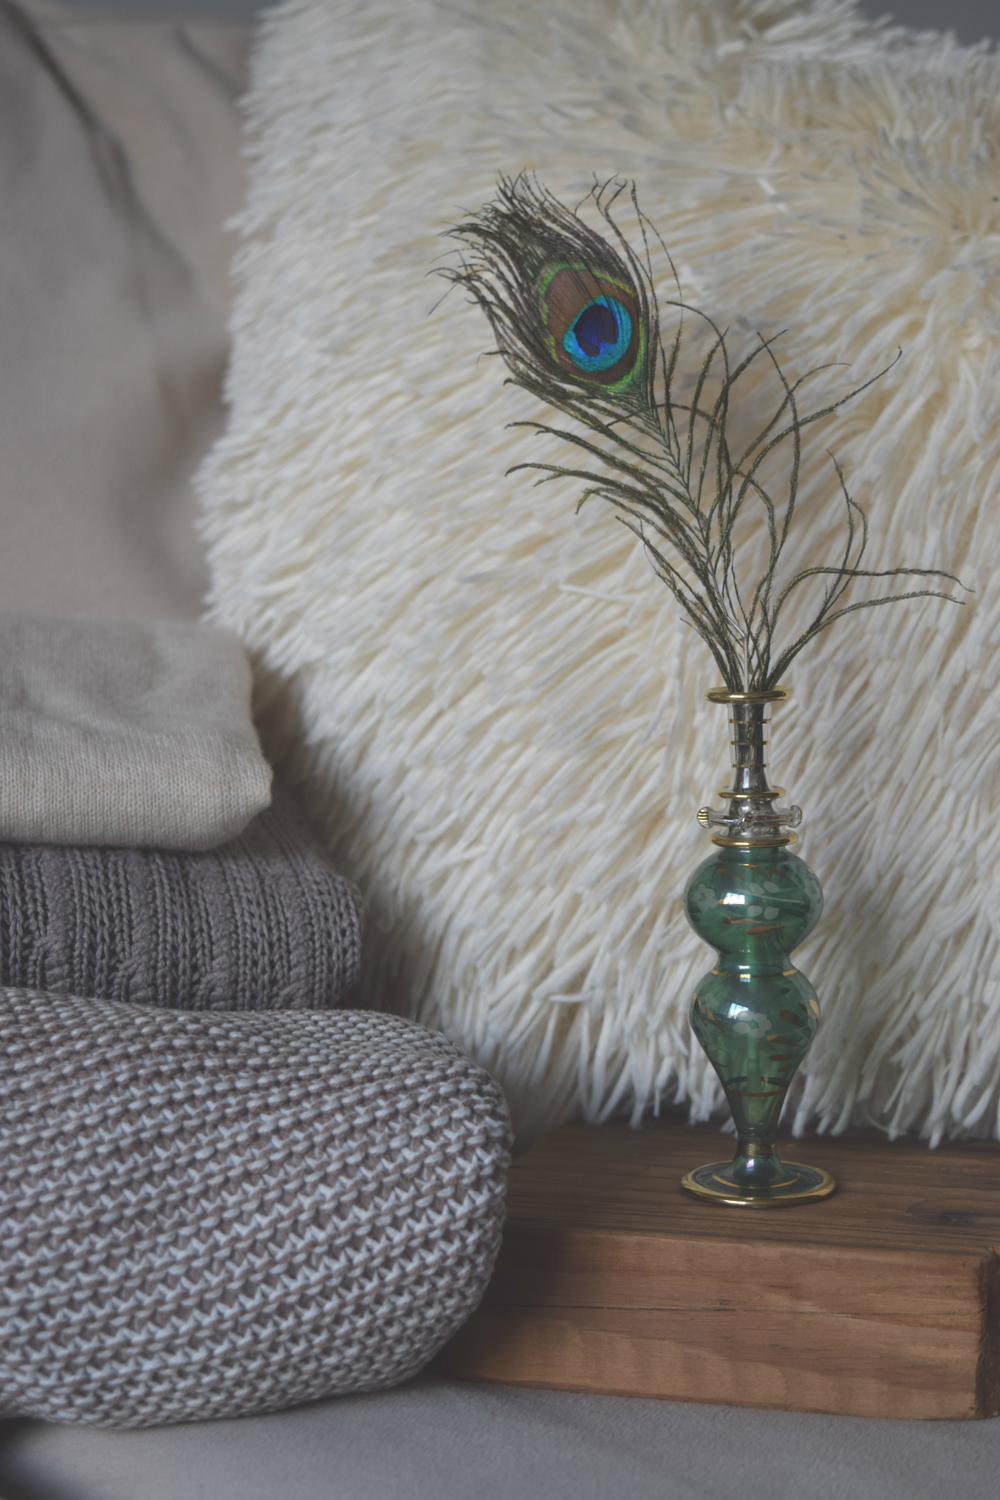 Carole Schopp Interior Decor The Little Notebook Blue Green Bottle Peacock Feather